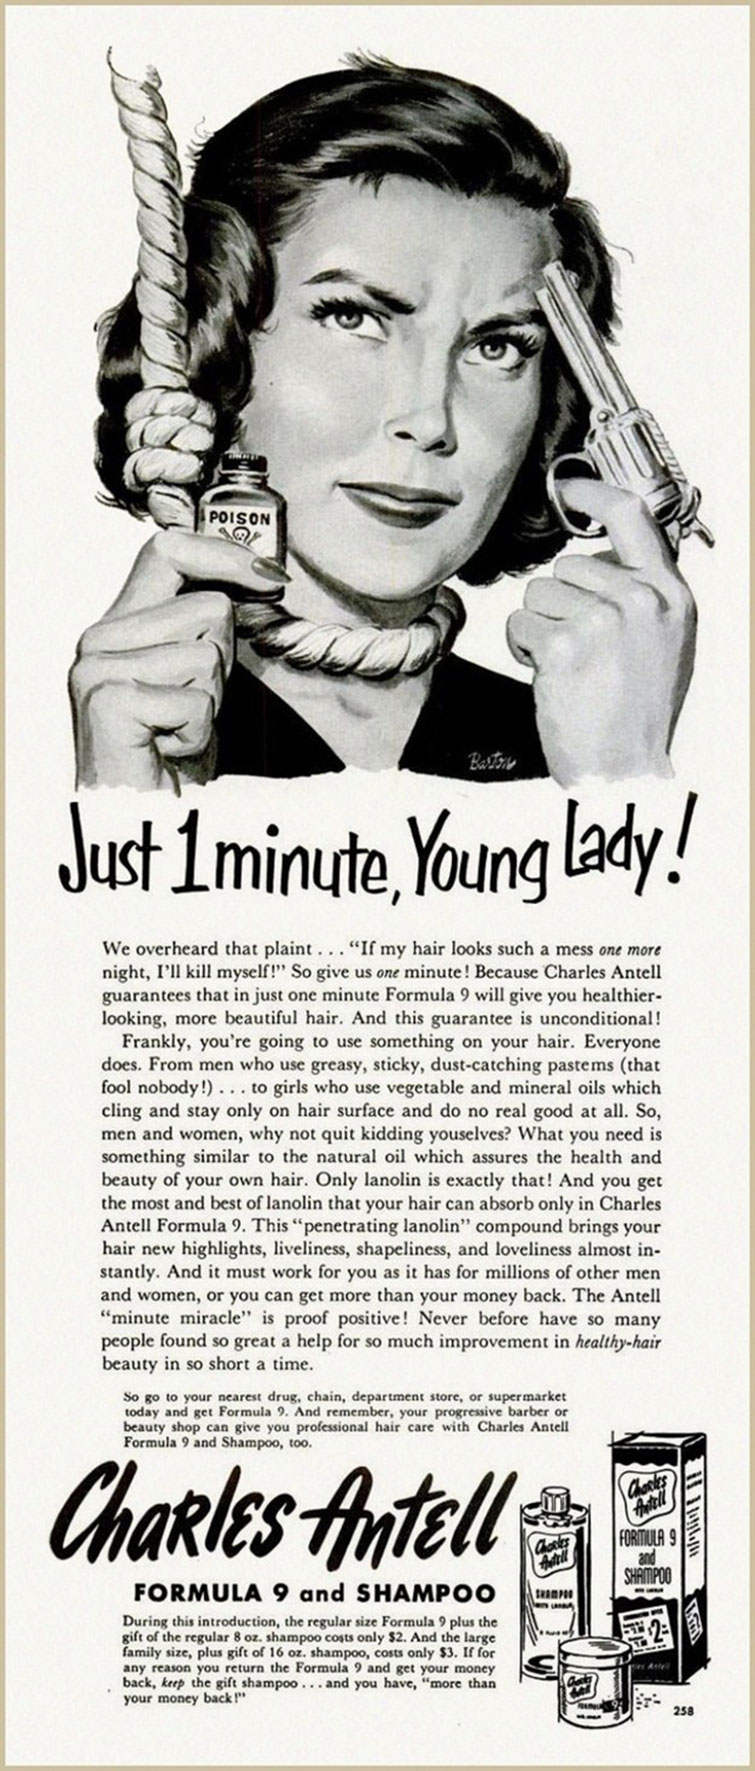 Vintage-Ads-That-Would-Be-Banned-Today-6